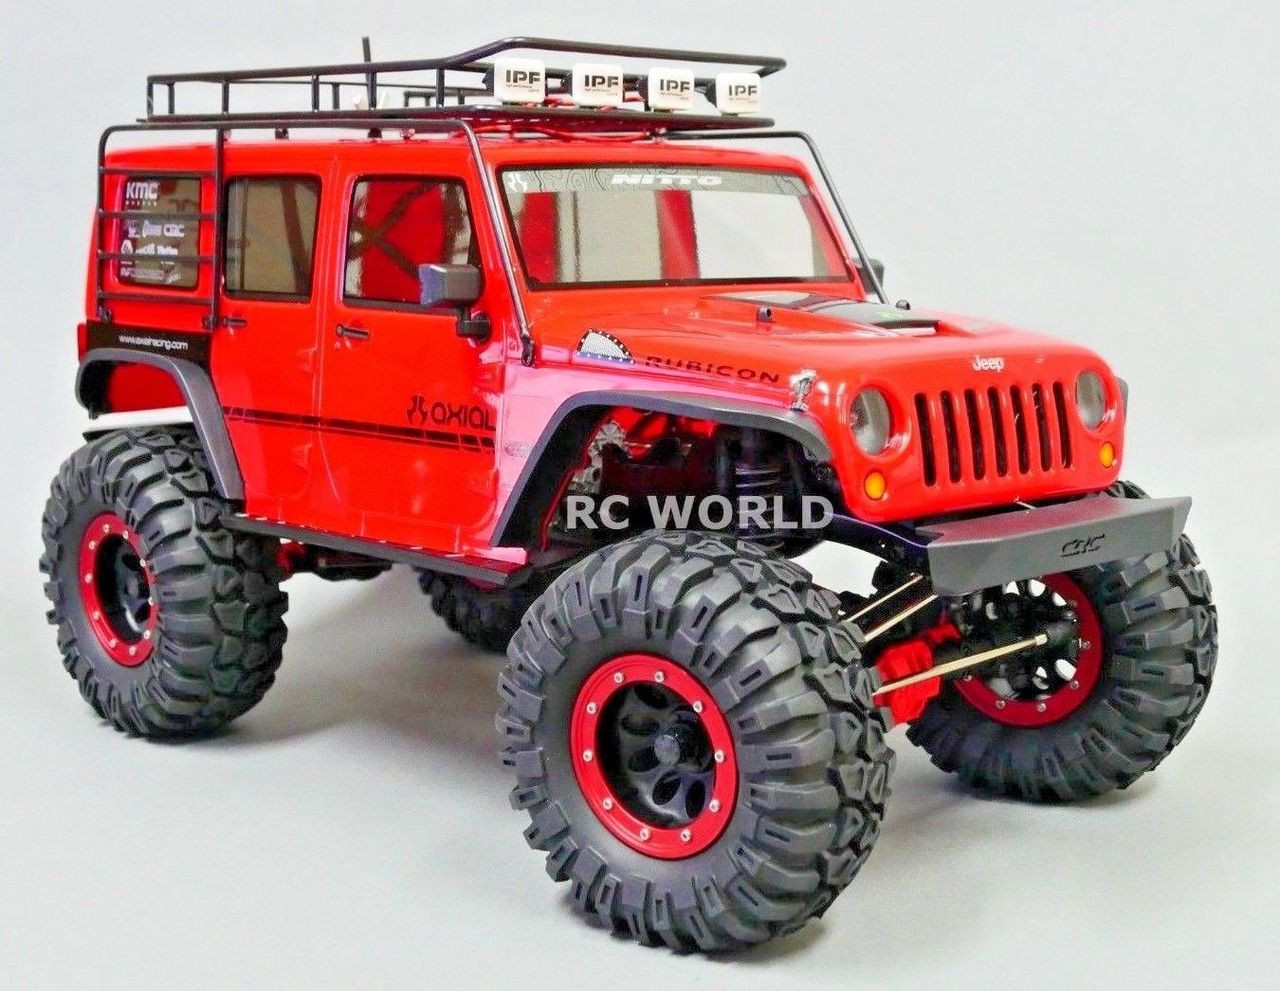 Jeep Rims And Tires >> Axial Jeep Wrangler 2 2 Beadlock Crawler Wheels Tires 130mm Red